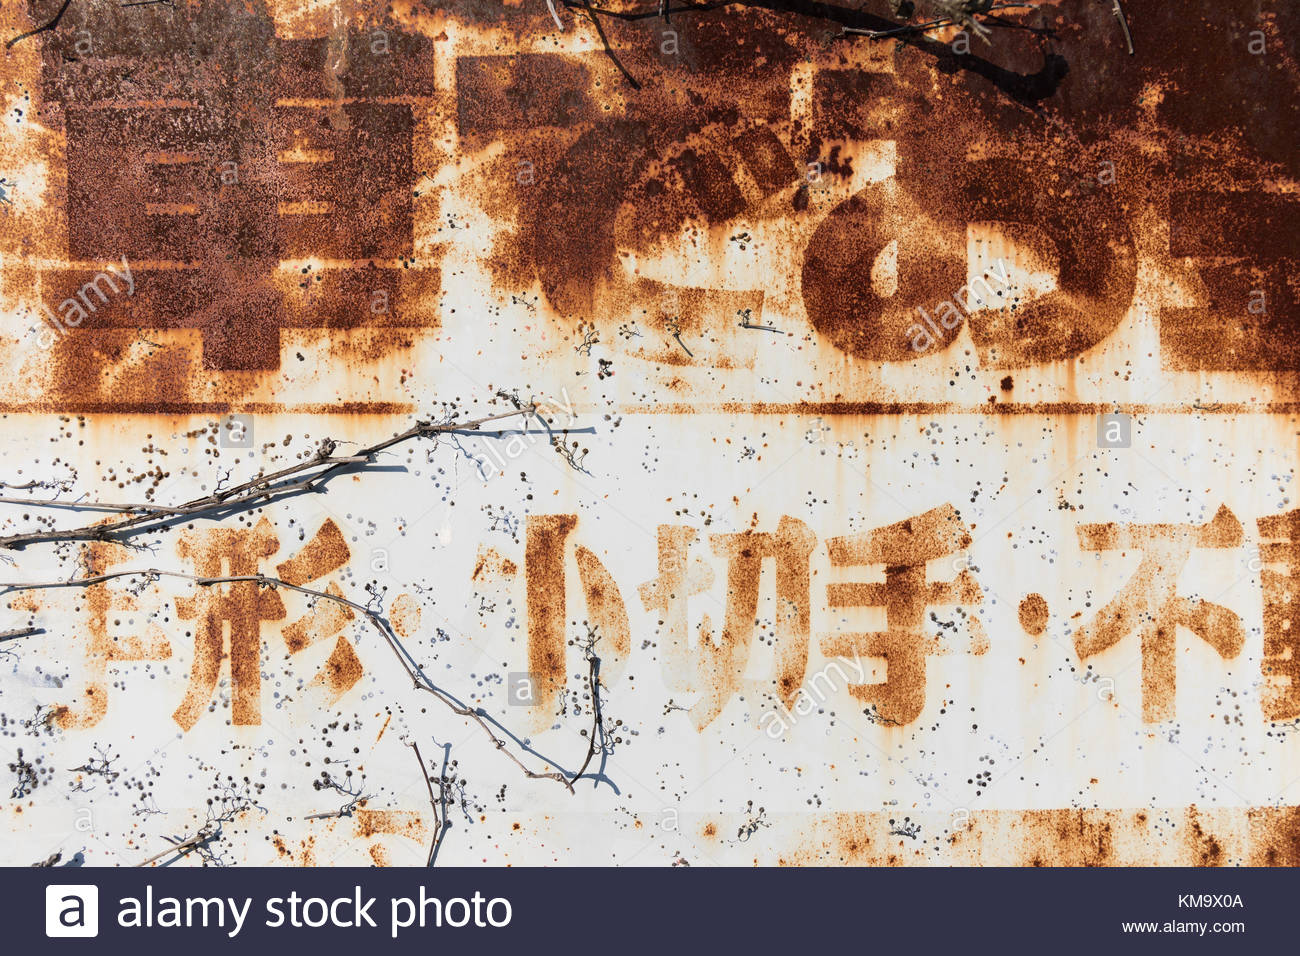 Old rusty sign on a wall in Shin-Koenji, Suginami, Tokyo, Japan Stock Photo